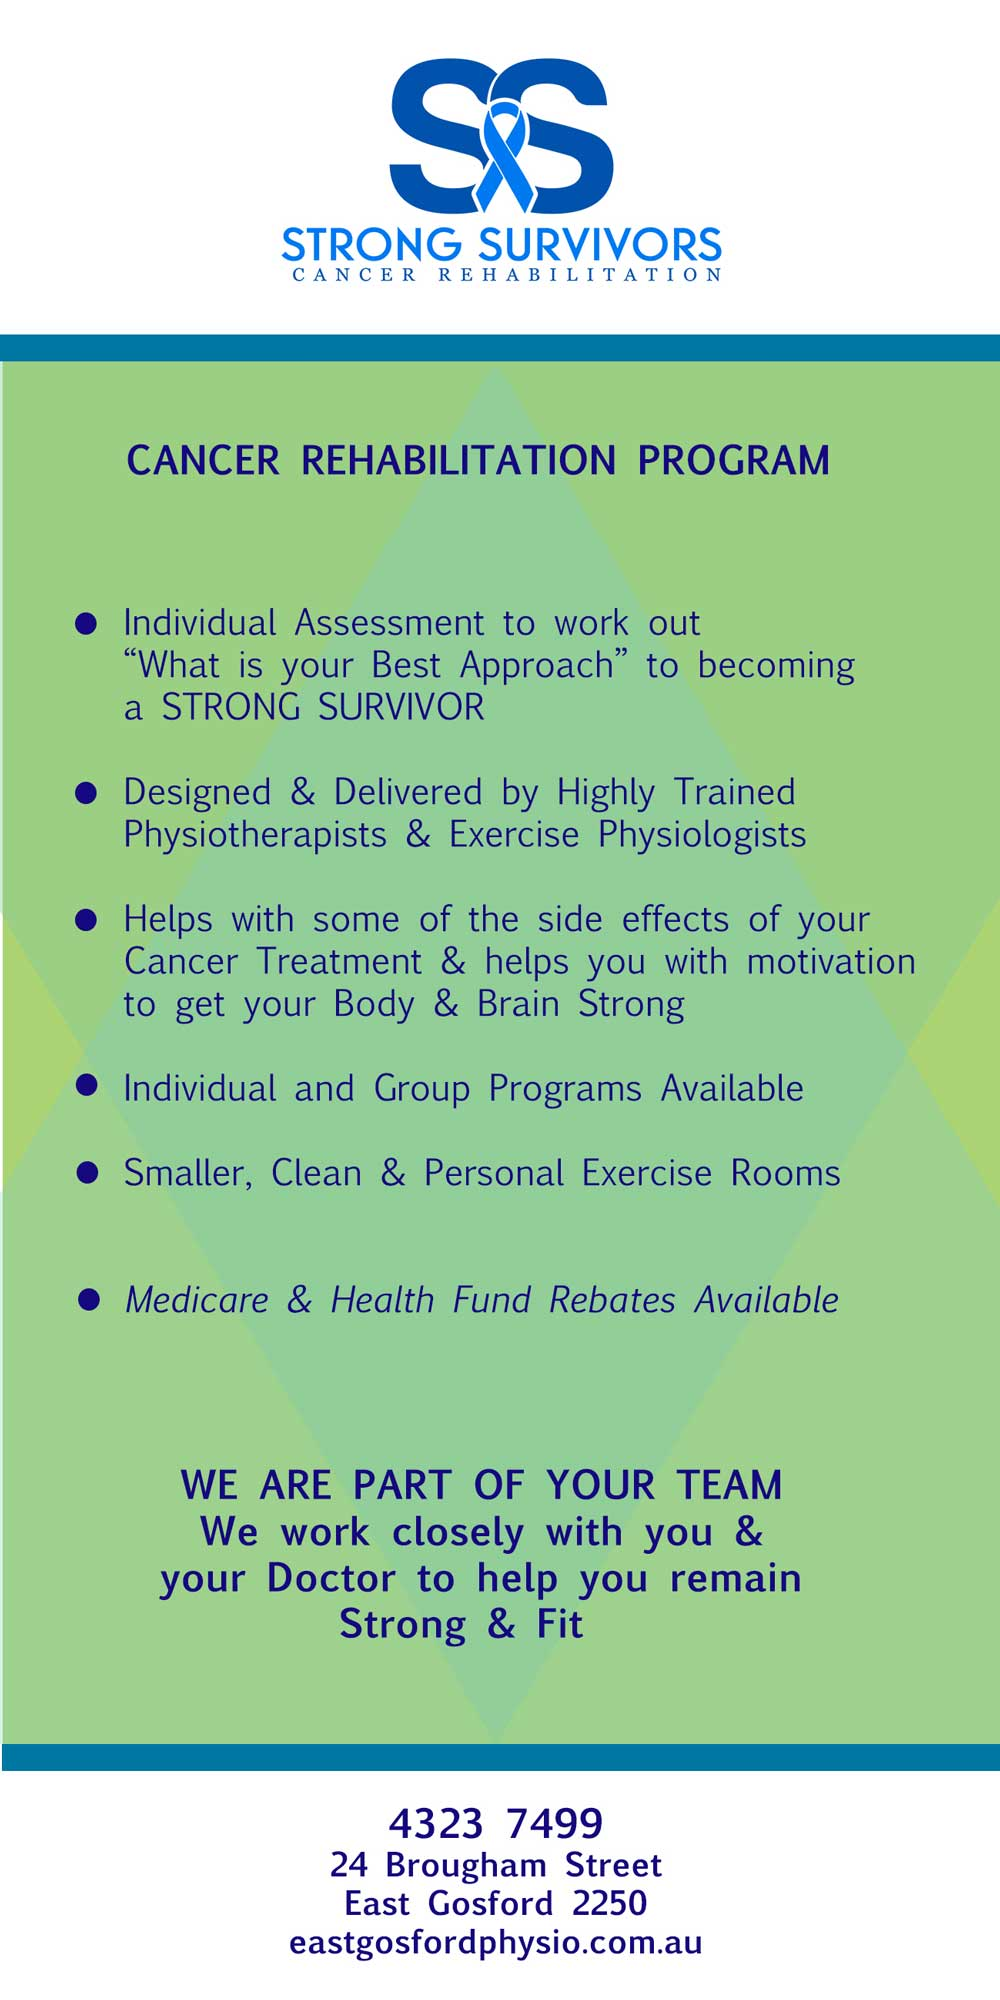 strong survivors flyer - East Gosford Physio